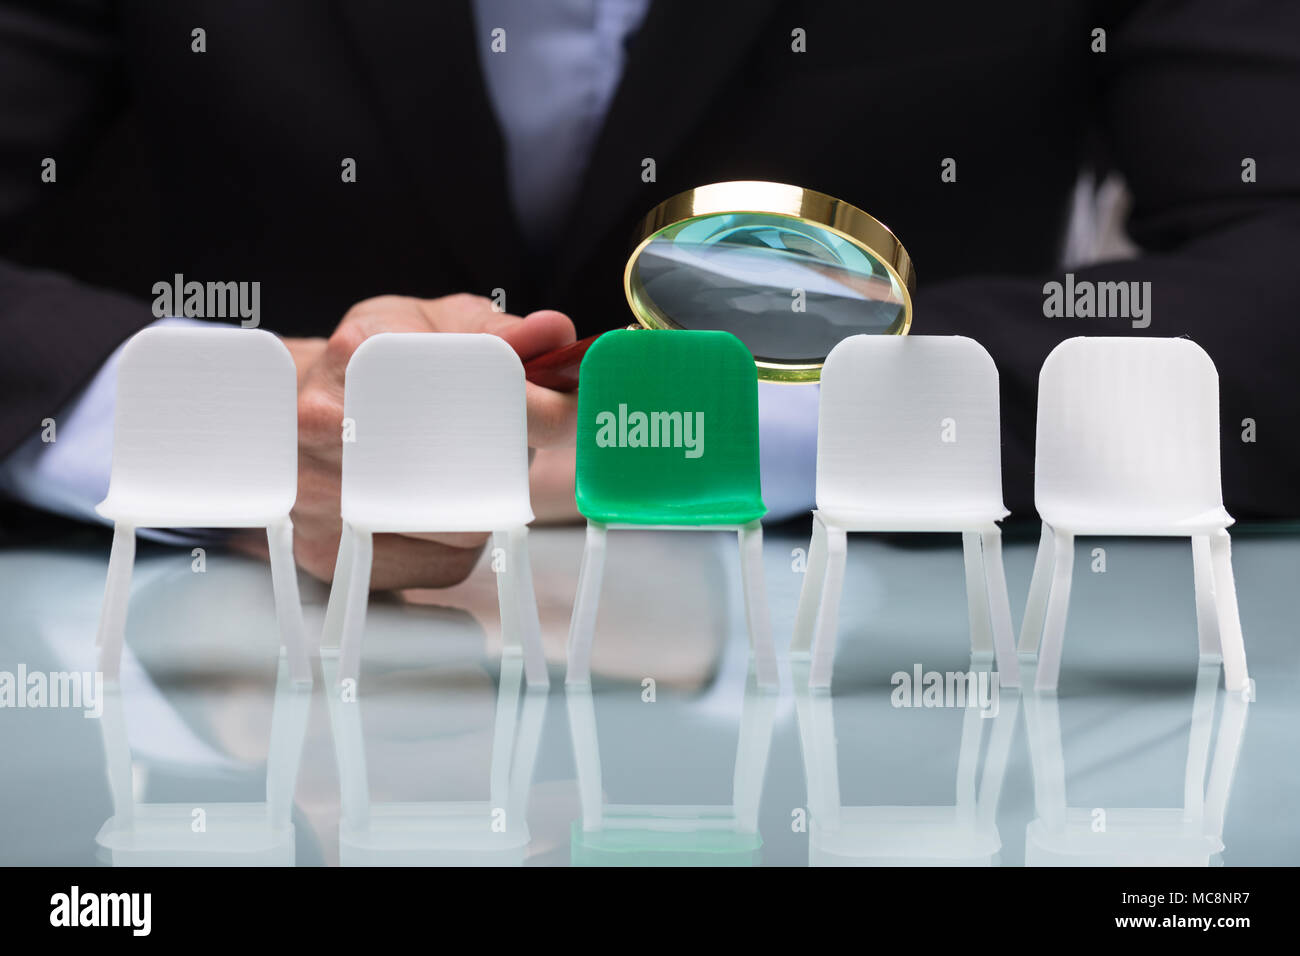 Close-up Of A Businessperson's Hand Looking At Vacant Chairs Through Magnifying Glass Stock Photo